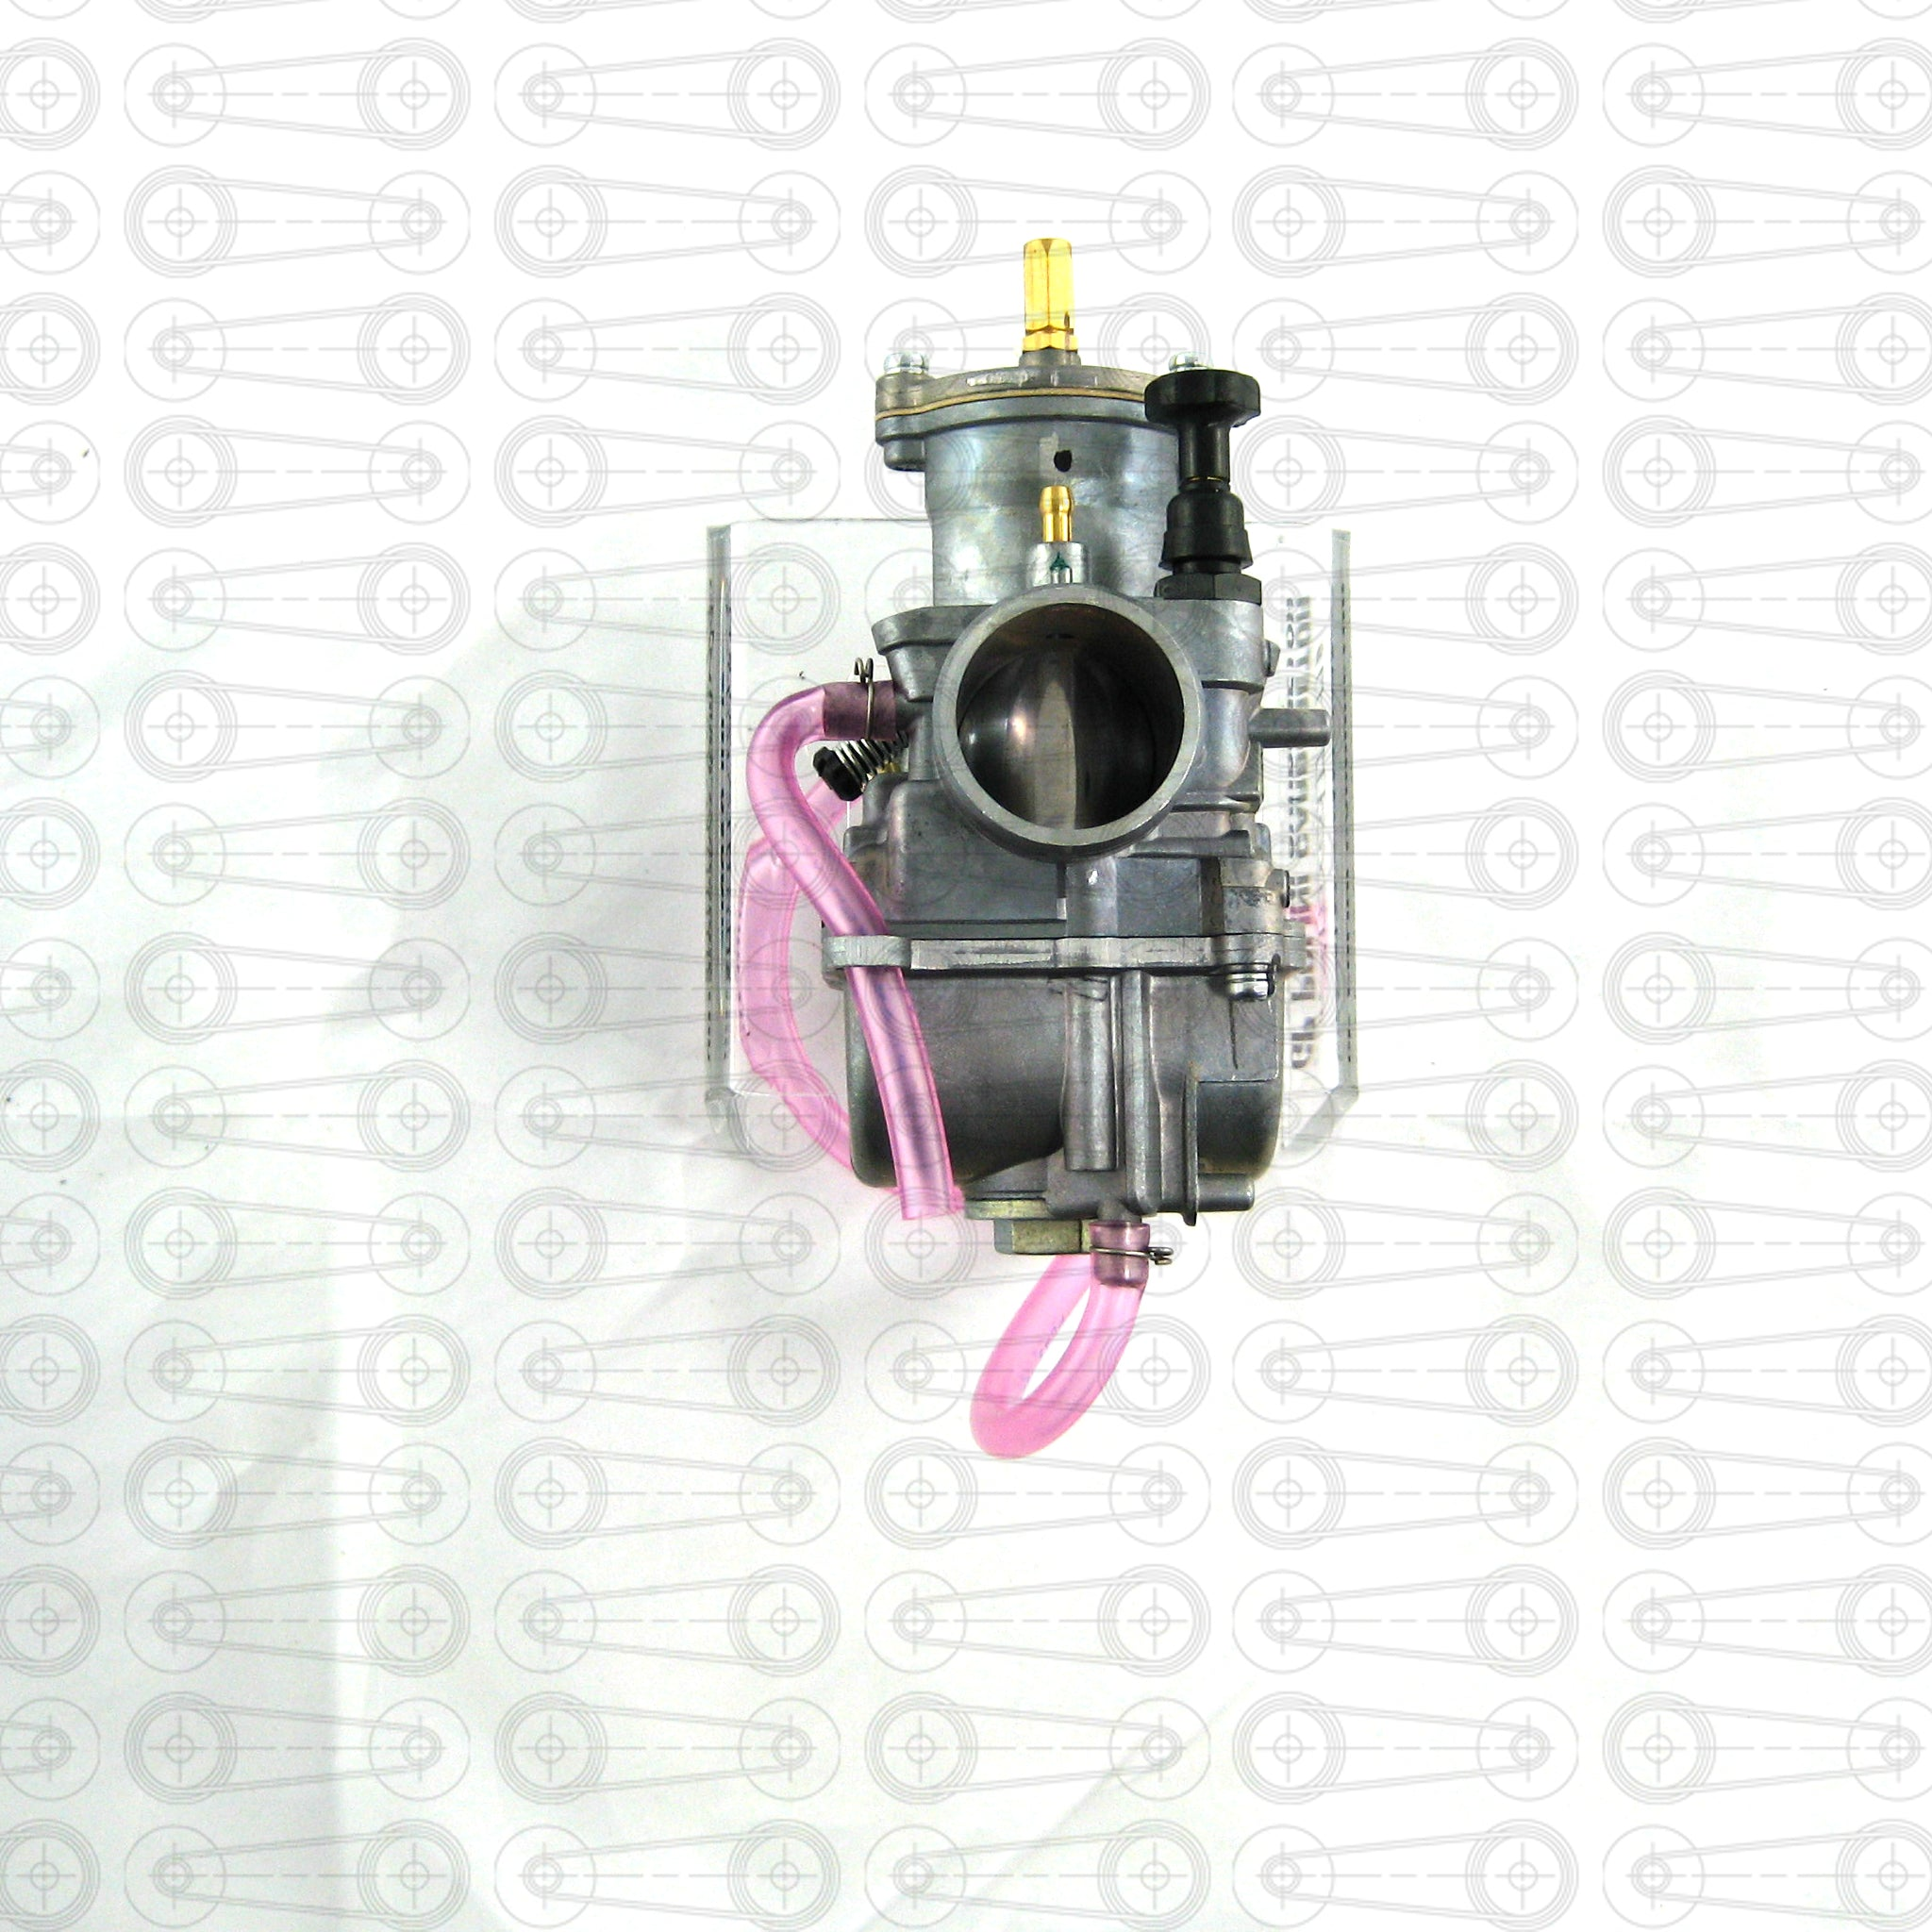 KEIHIN - 28mm CARBURETOR (Universal)